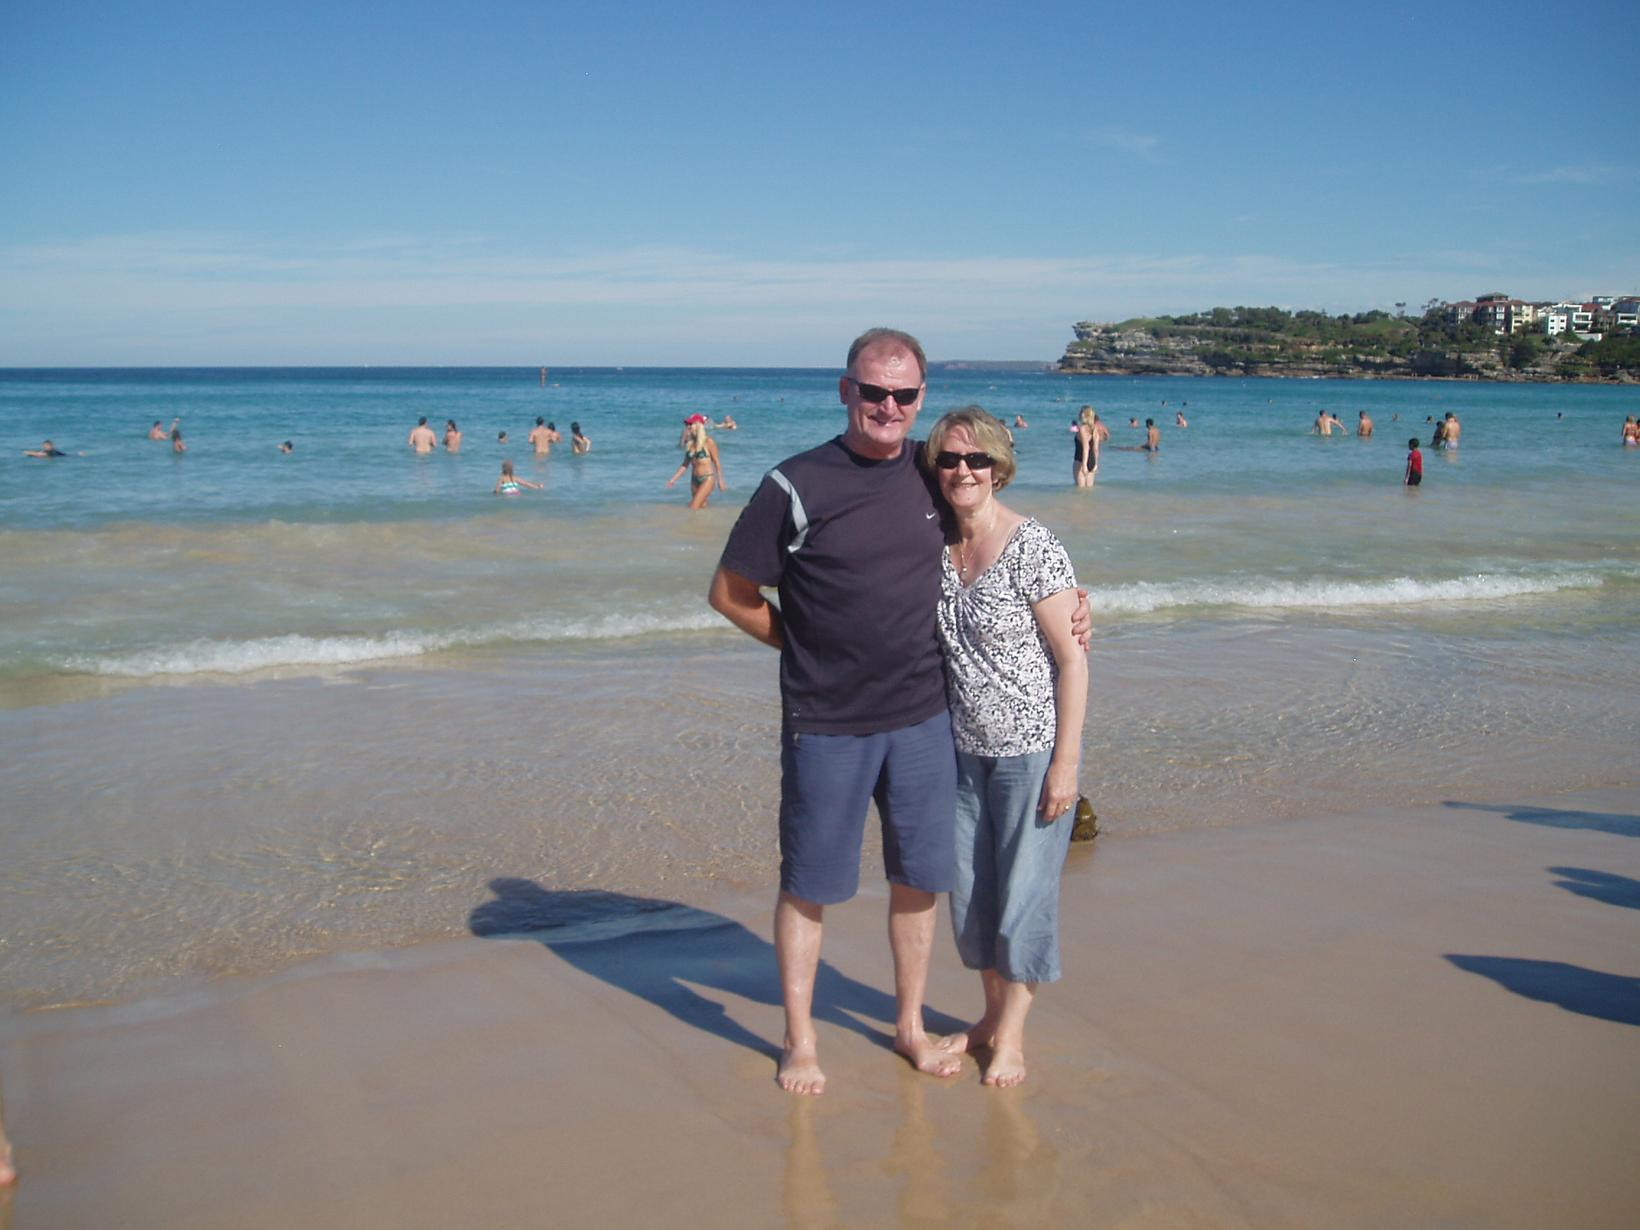 Wendy & Bob from Geelong, Victoria, Australia